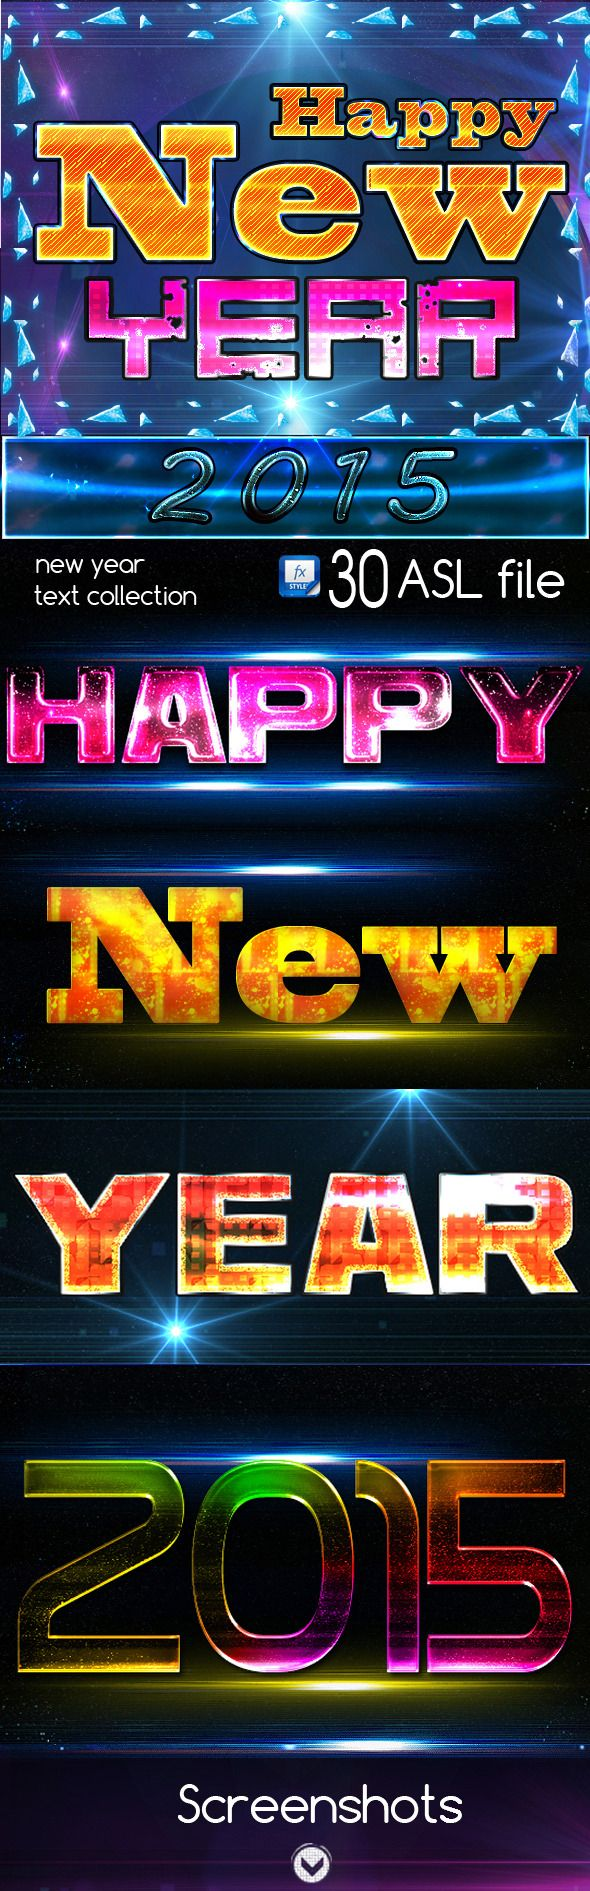 Happy New Year 2015 Text Effects